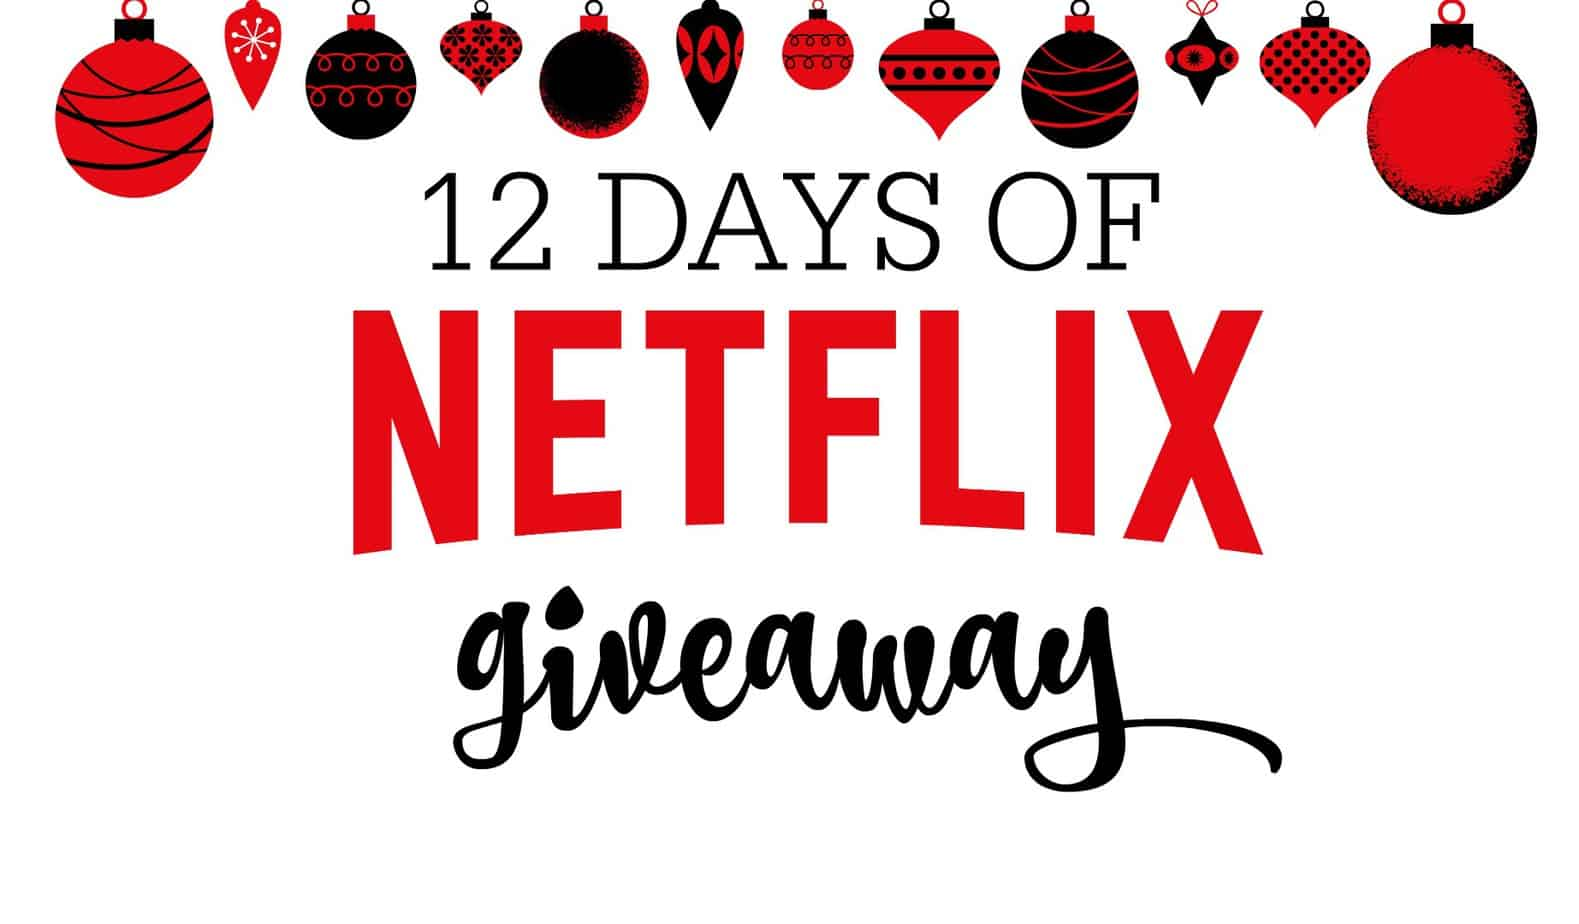 12 Days of Netflix #StreamTeam